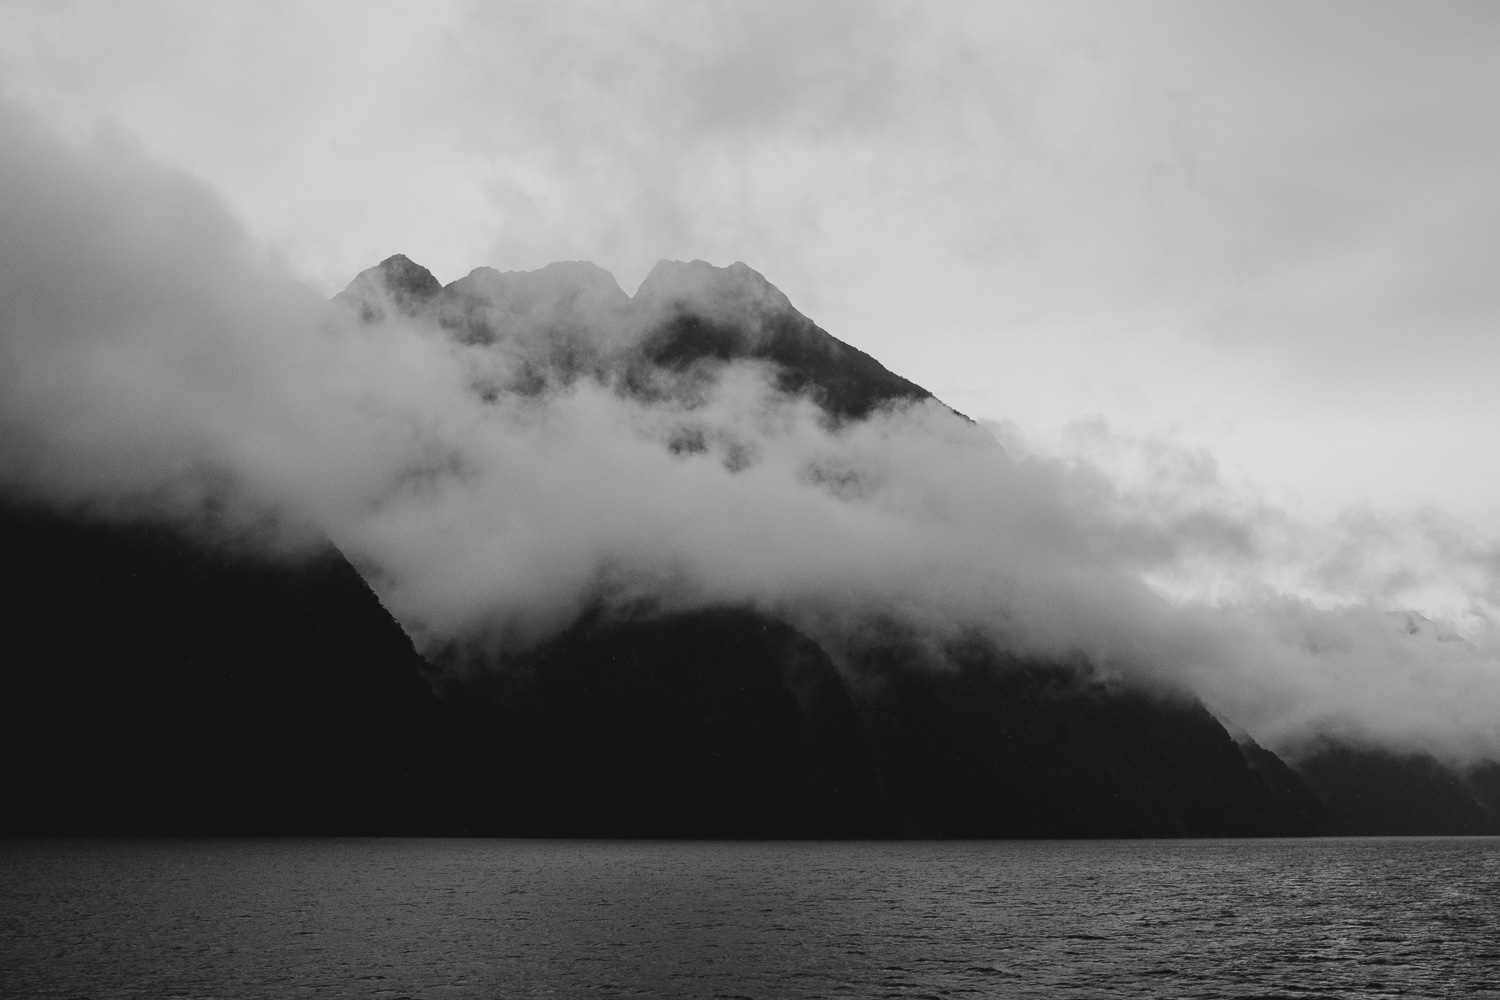 180210_new-zealand-road-trip-lcarvitto_65.jpg